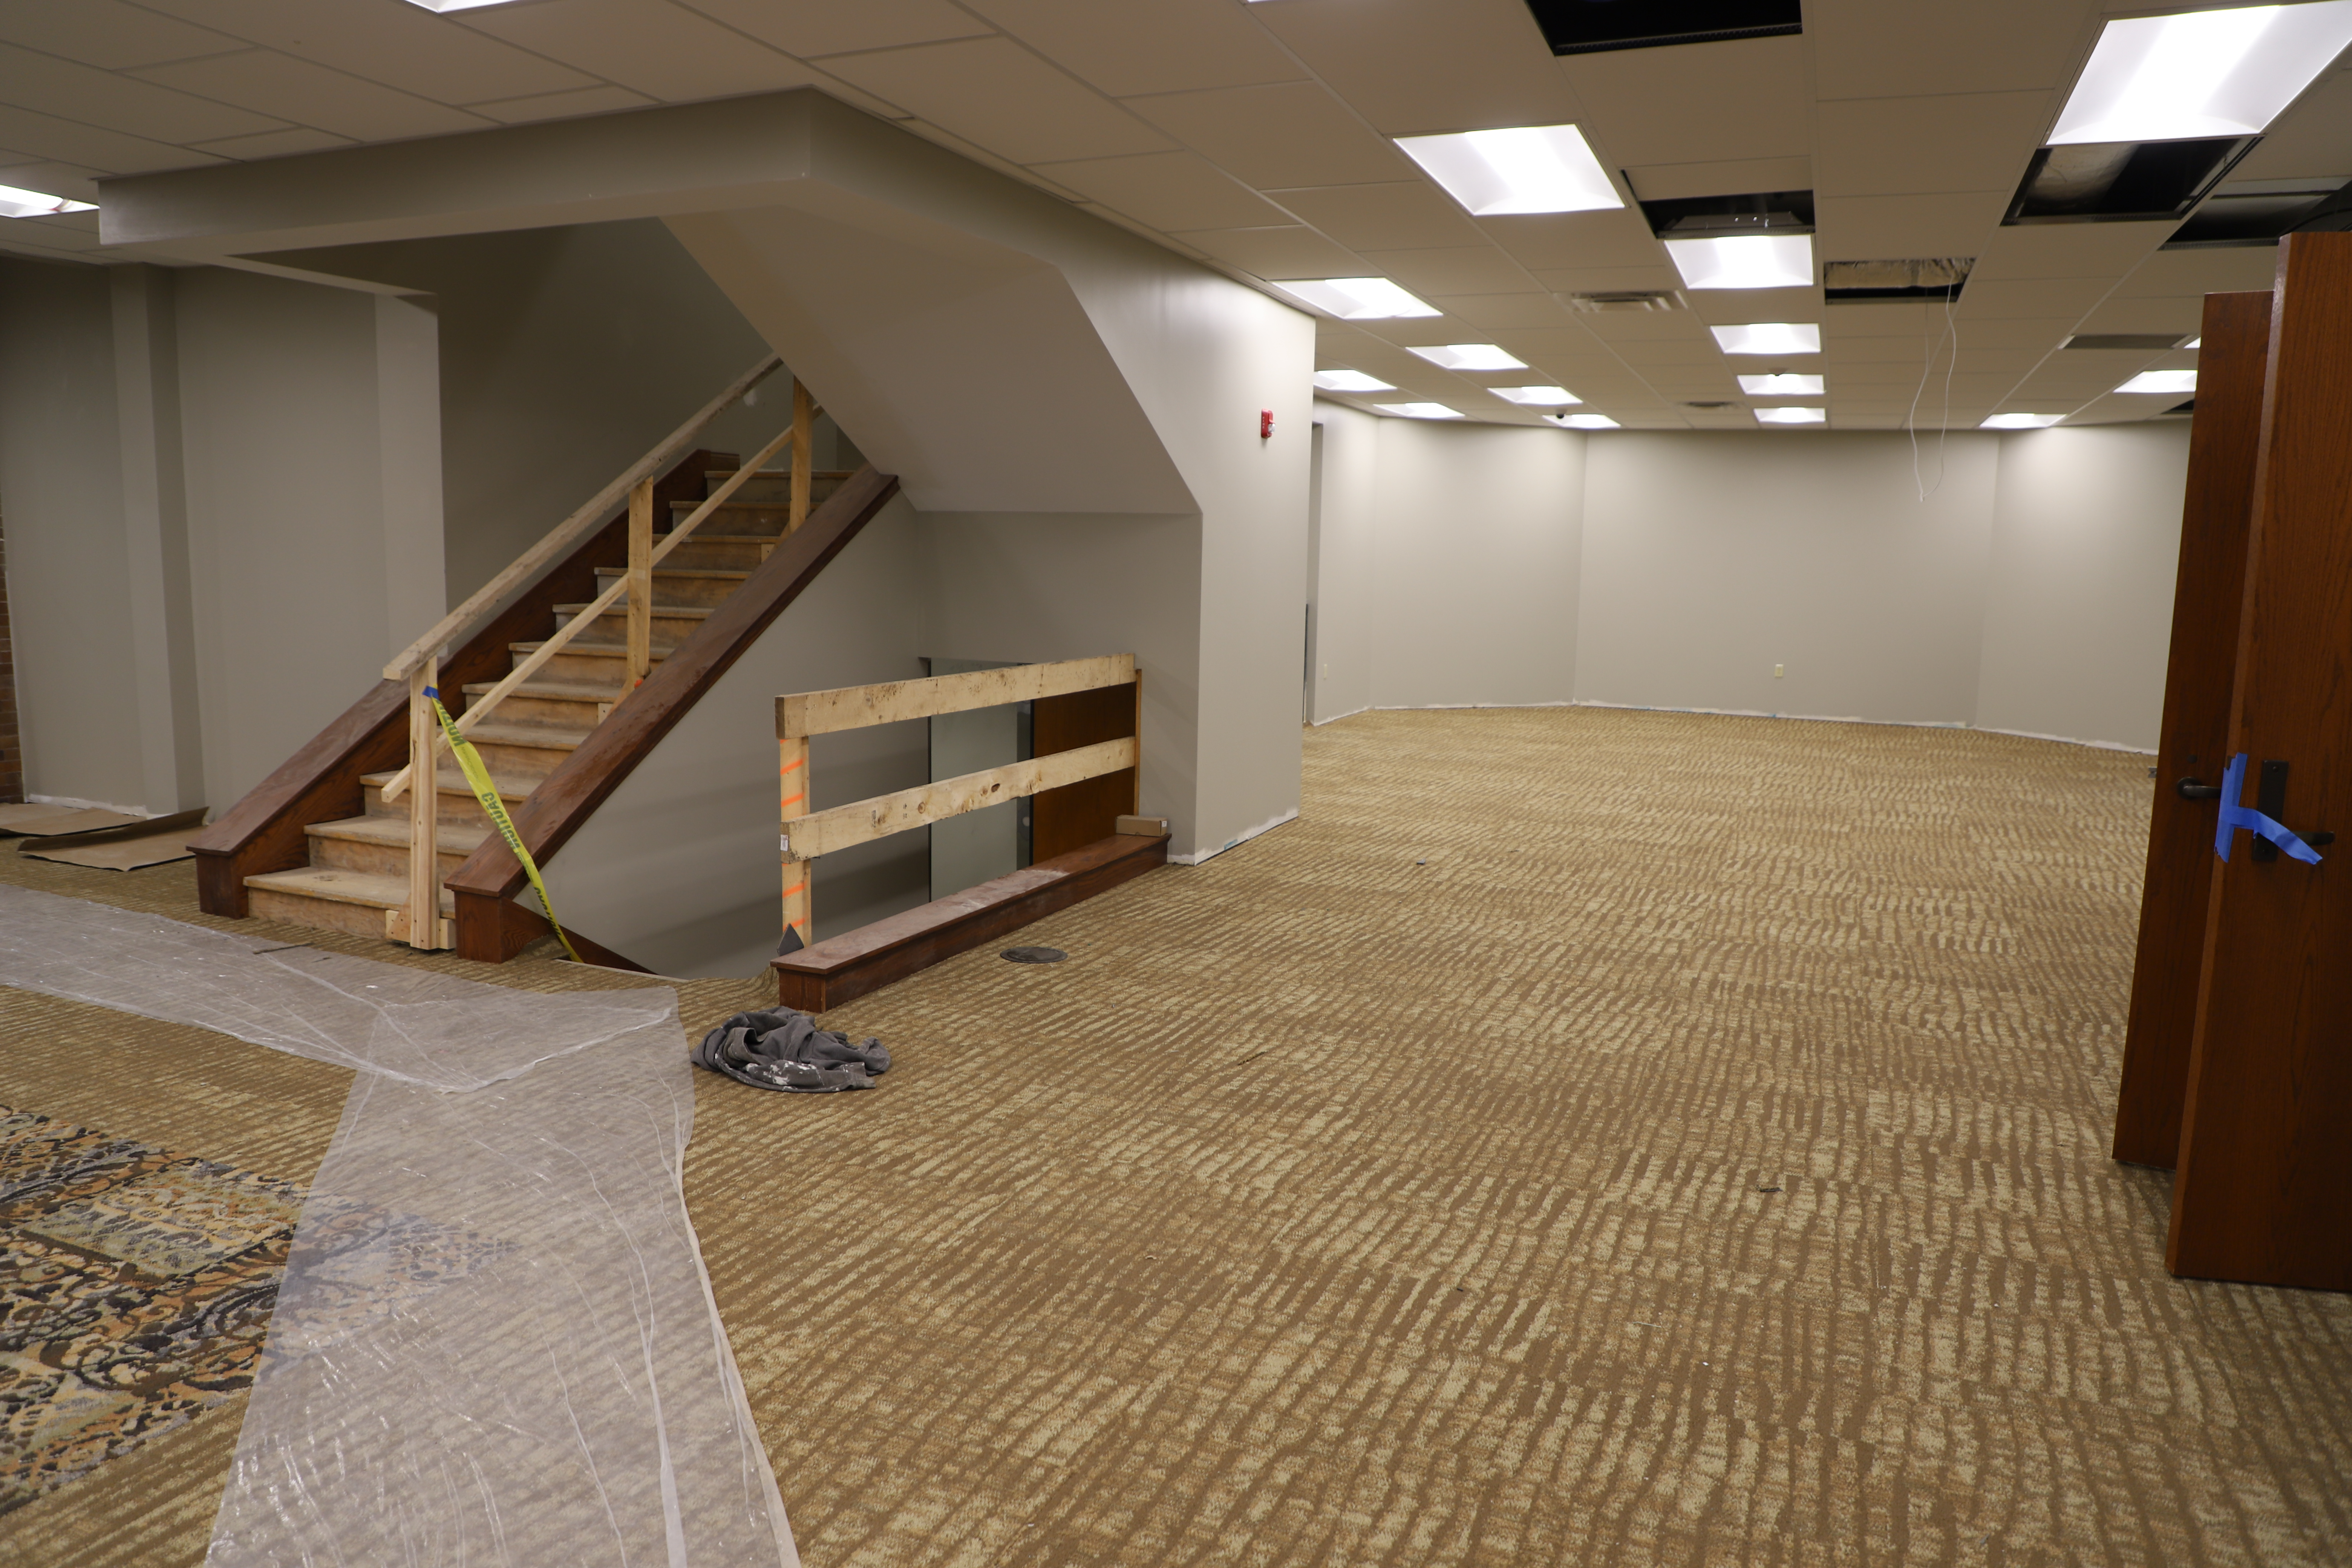 Image of inside of Eckhart Public Library, showing main floor with new beige carpet